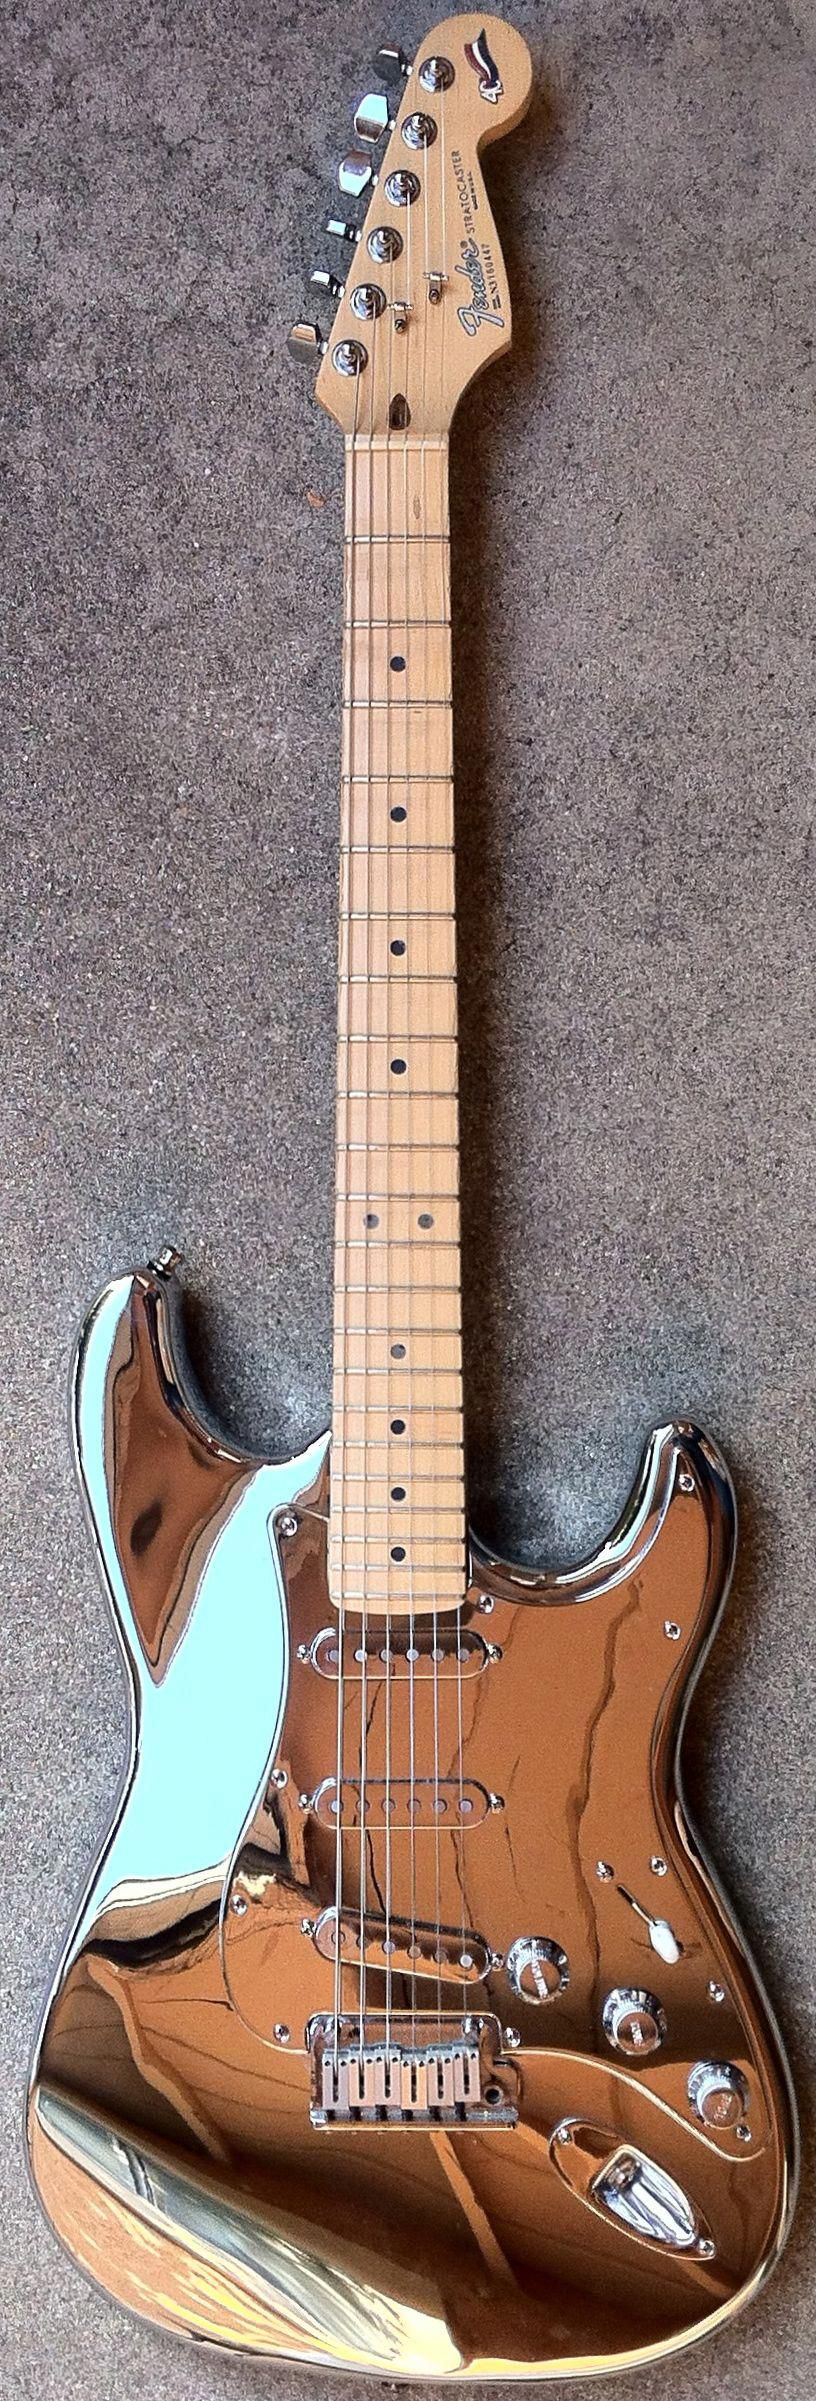 fender stratocaster that are really cool.